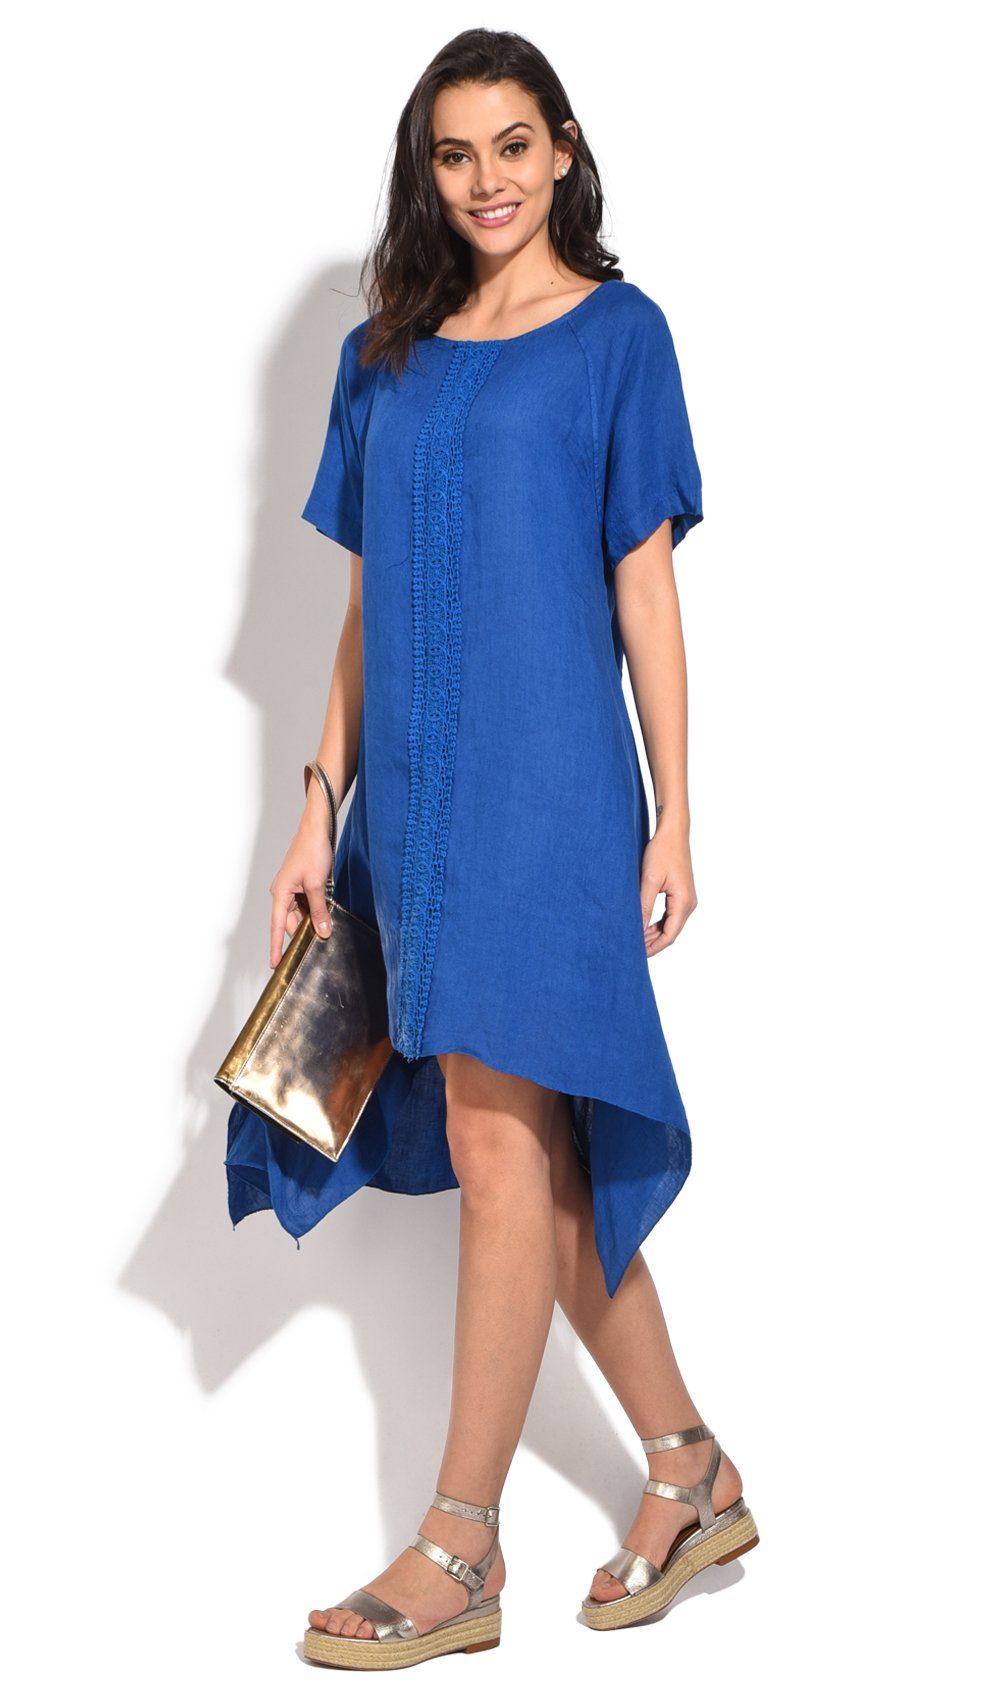 MID-LENGHT TRAPEZE DRESS WITH LACE INSERT AND HALF-SLEEVES